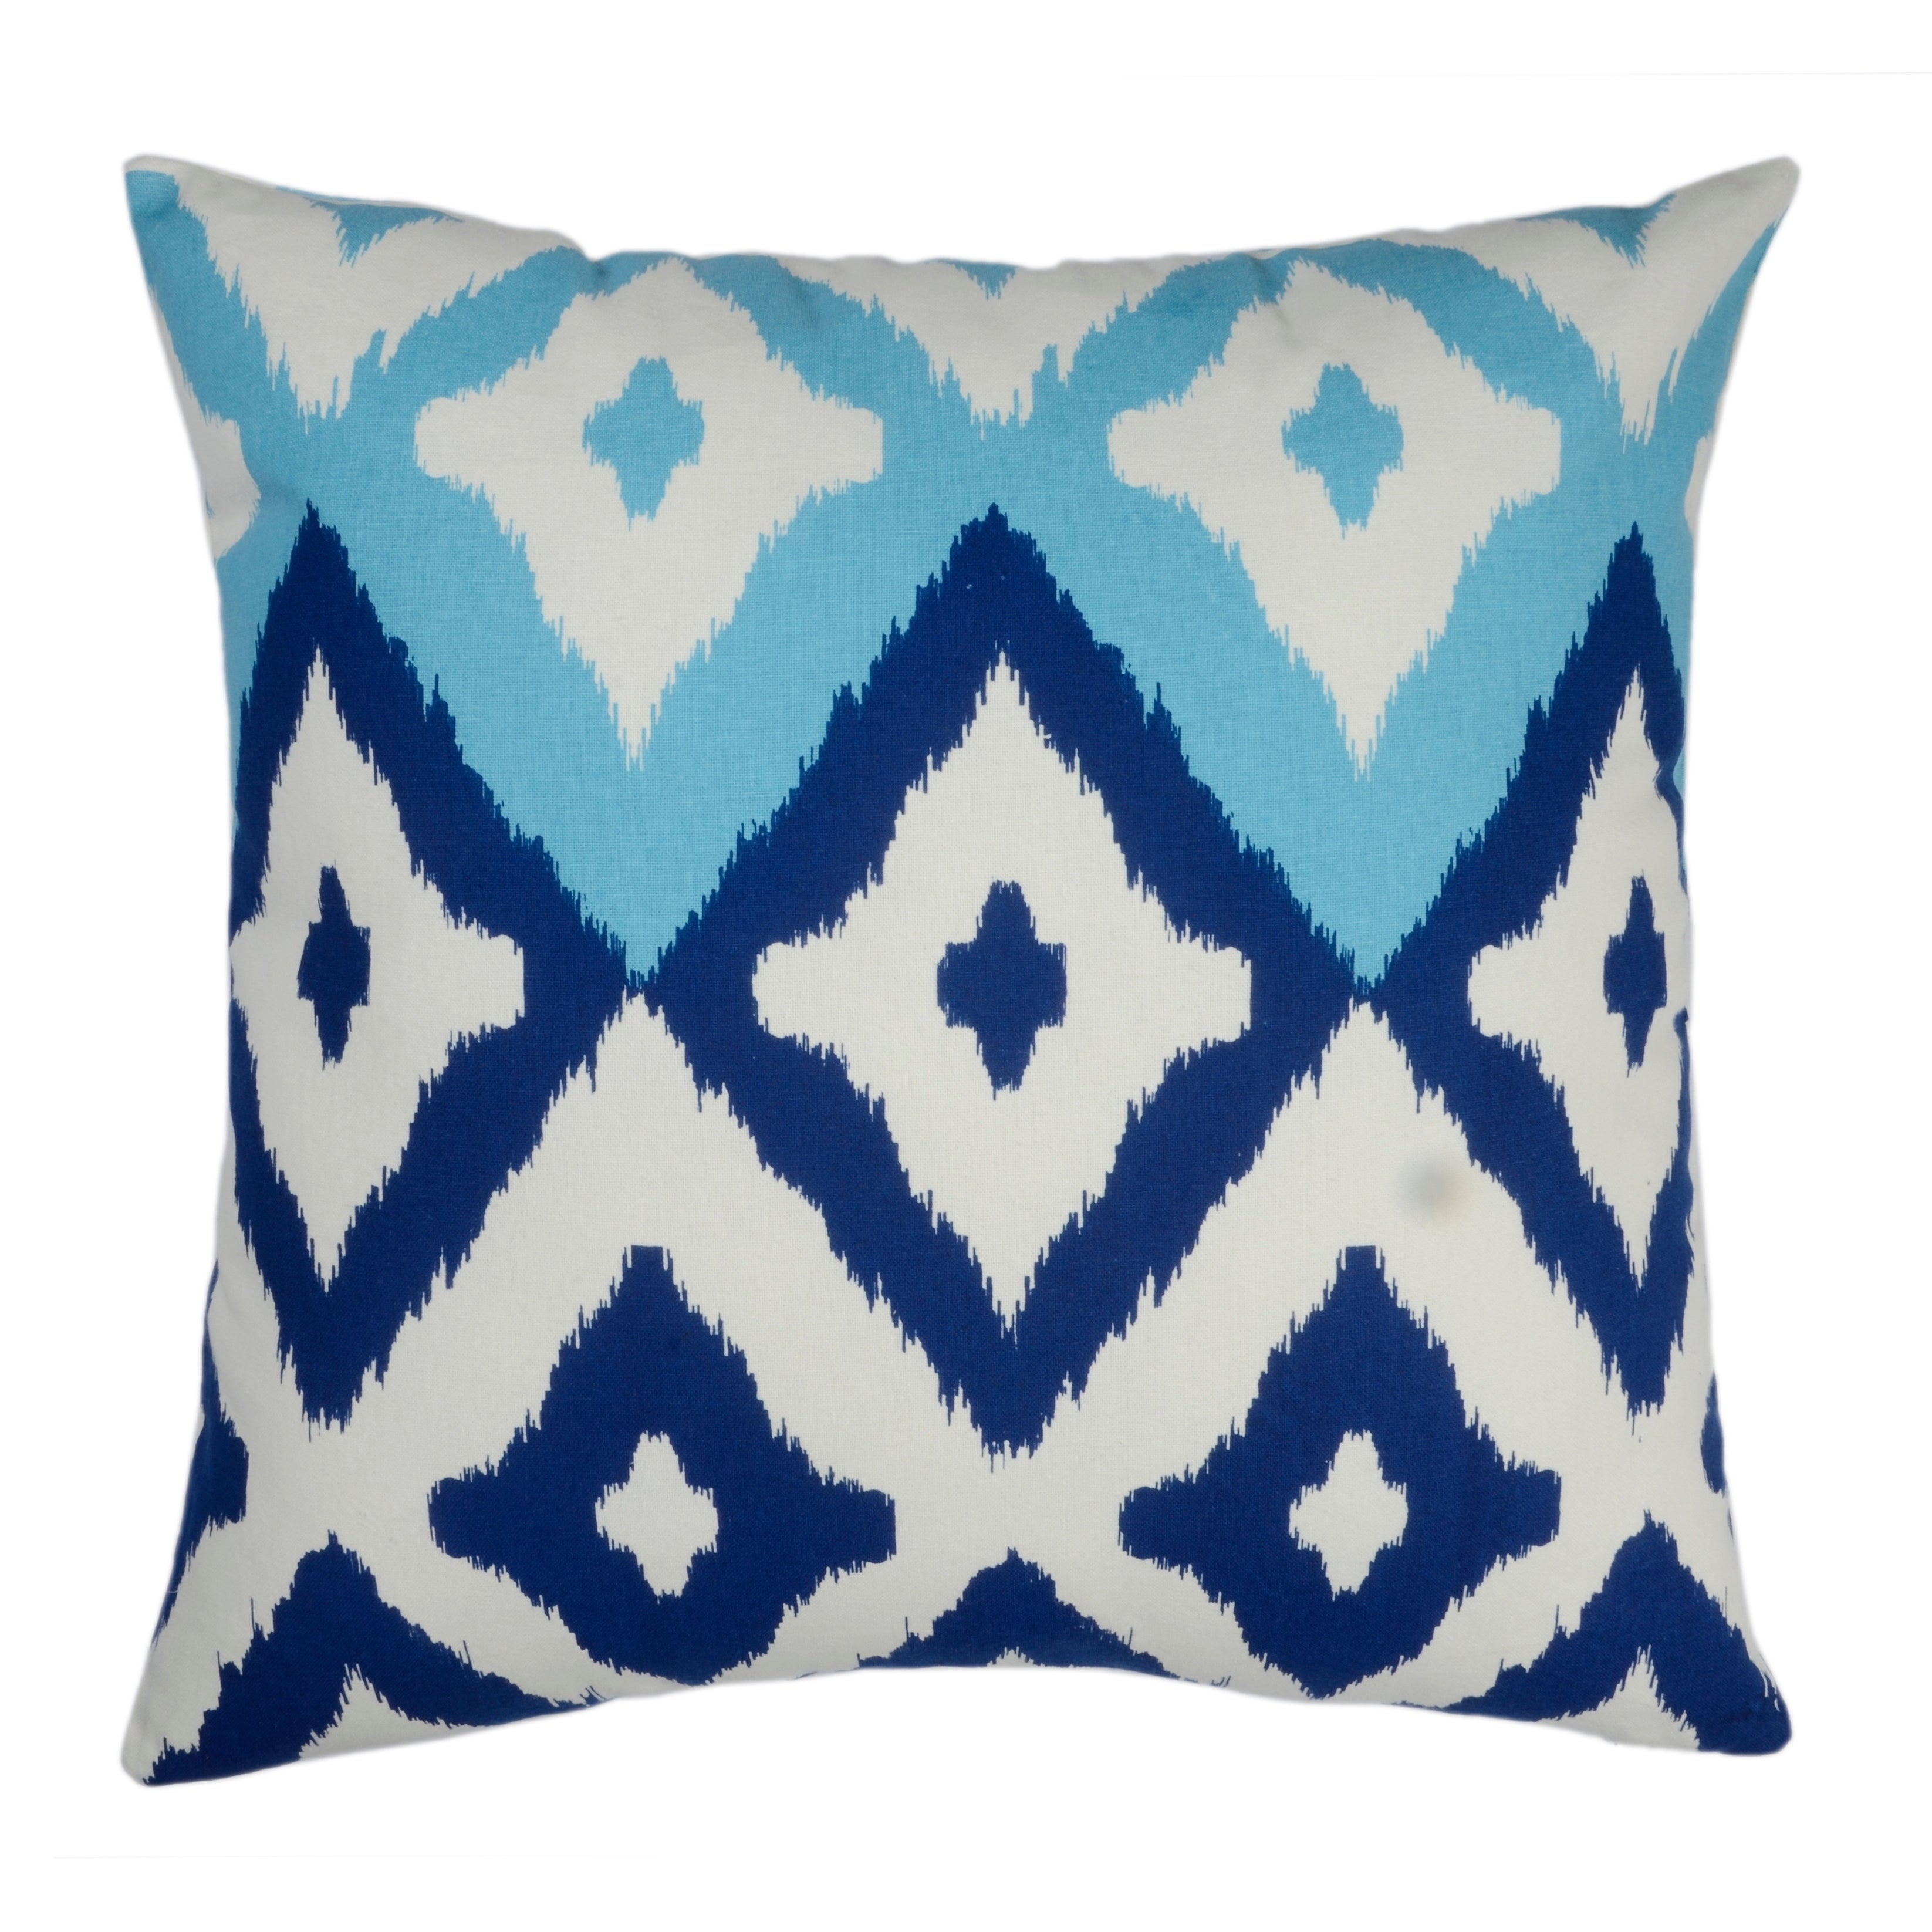 Divine Home Blue And Aqua Del Mar Ikat Throw Pillow Overstock 28010878